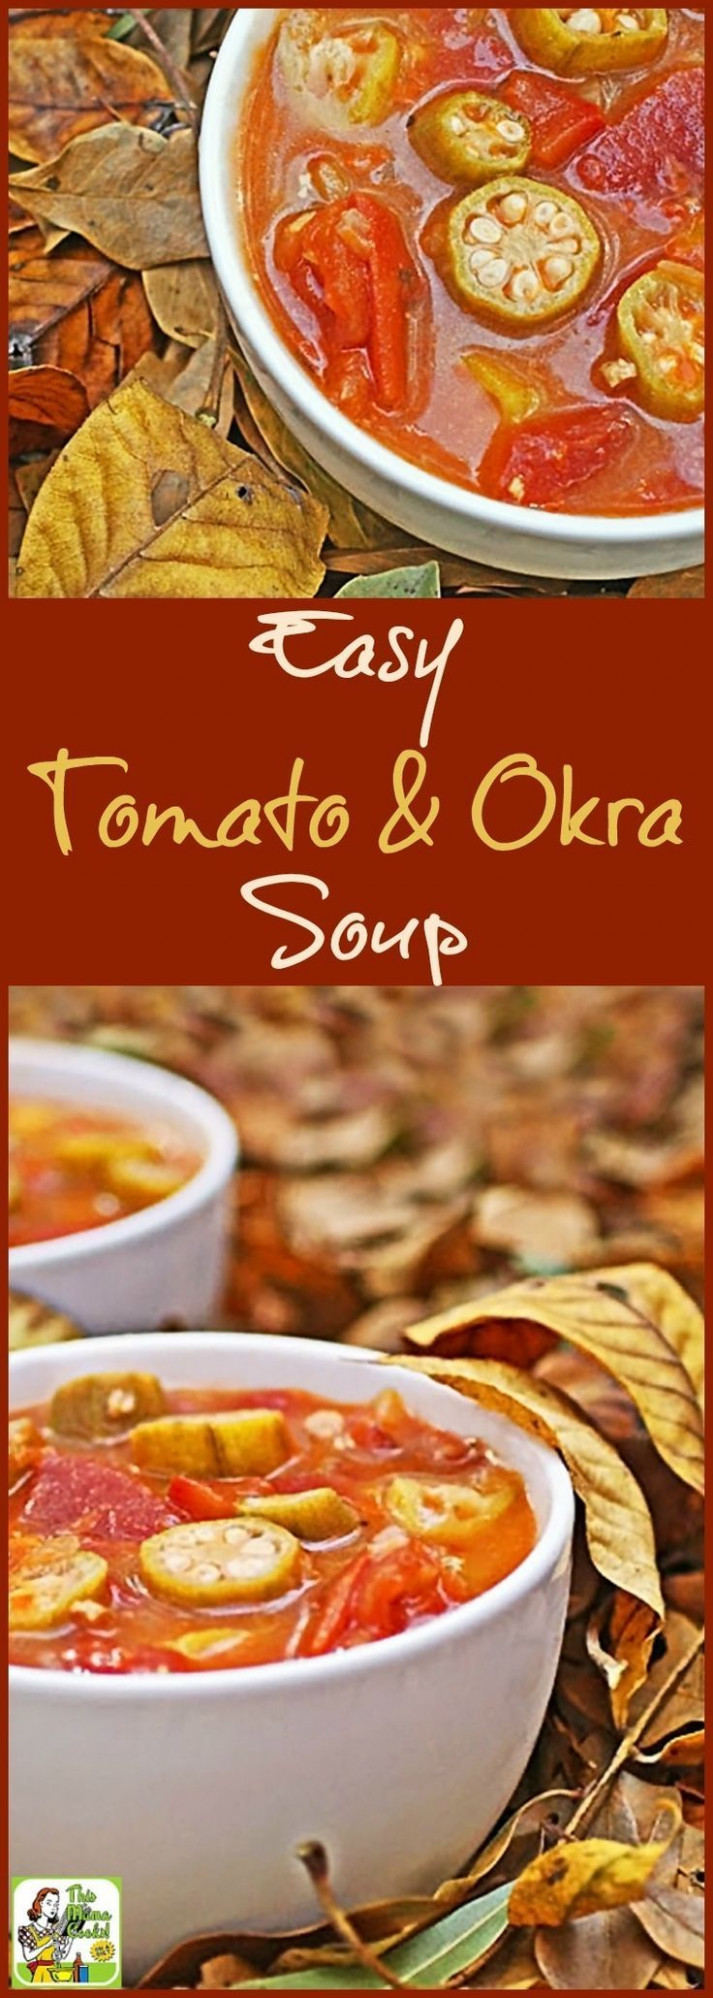 Looking for an easy to make healthy soup recipe? Check out ...